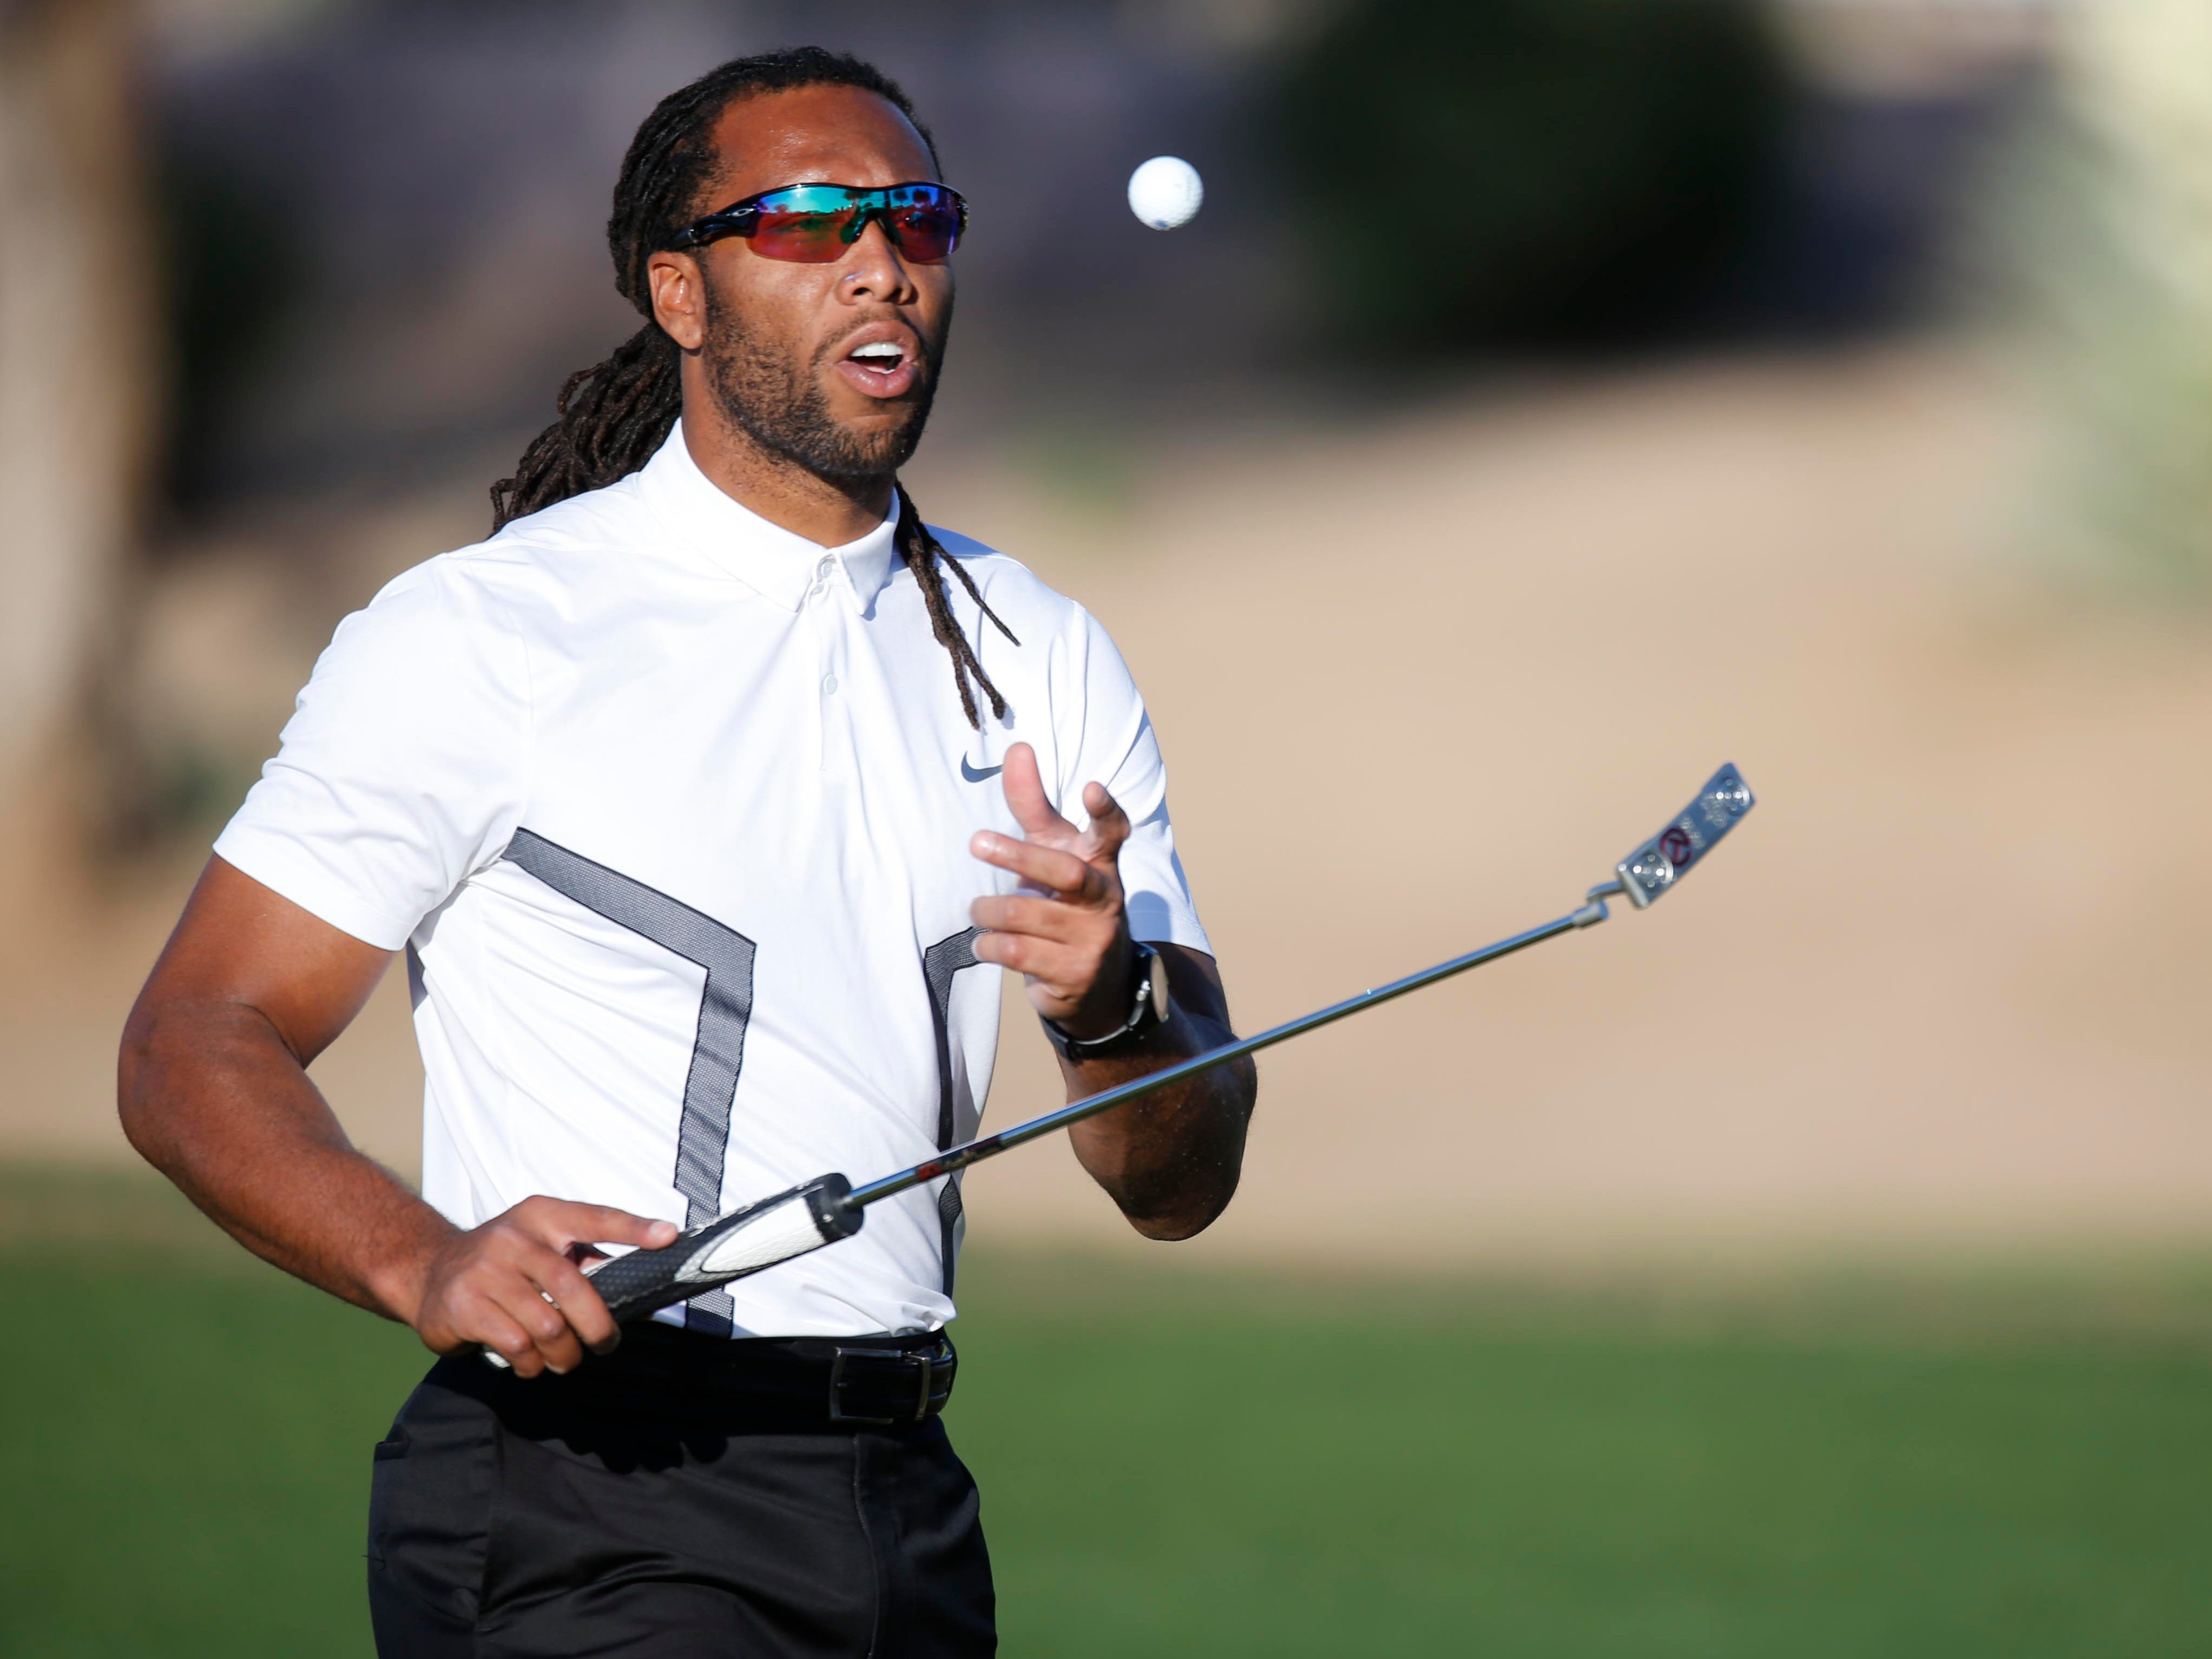 Cardinals' Larry Fitzgerald makes hole-in-one with former president Barack Obama